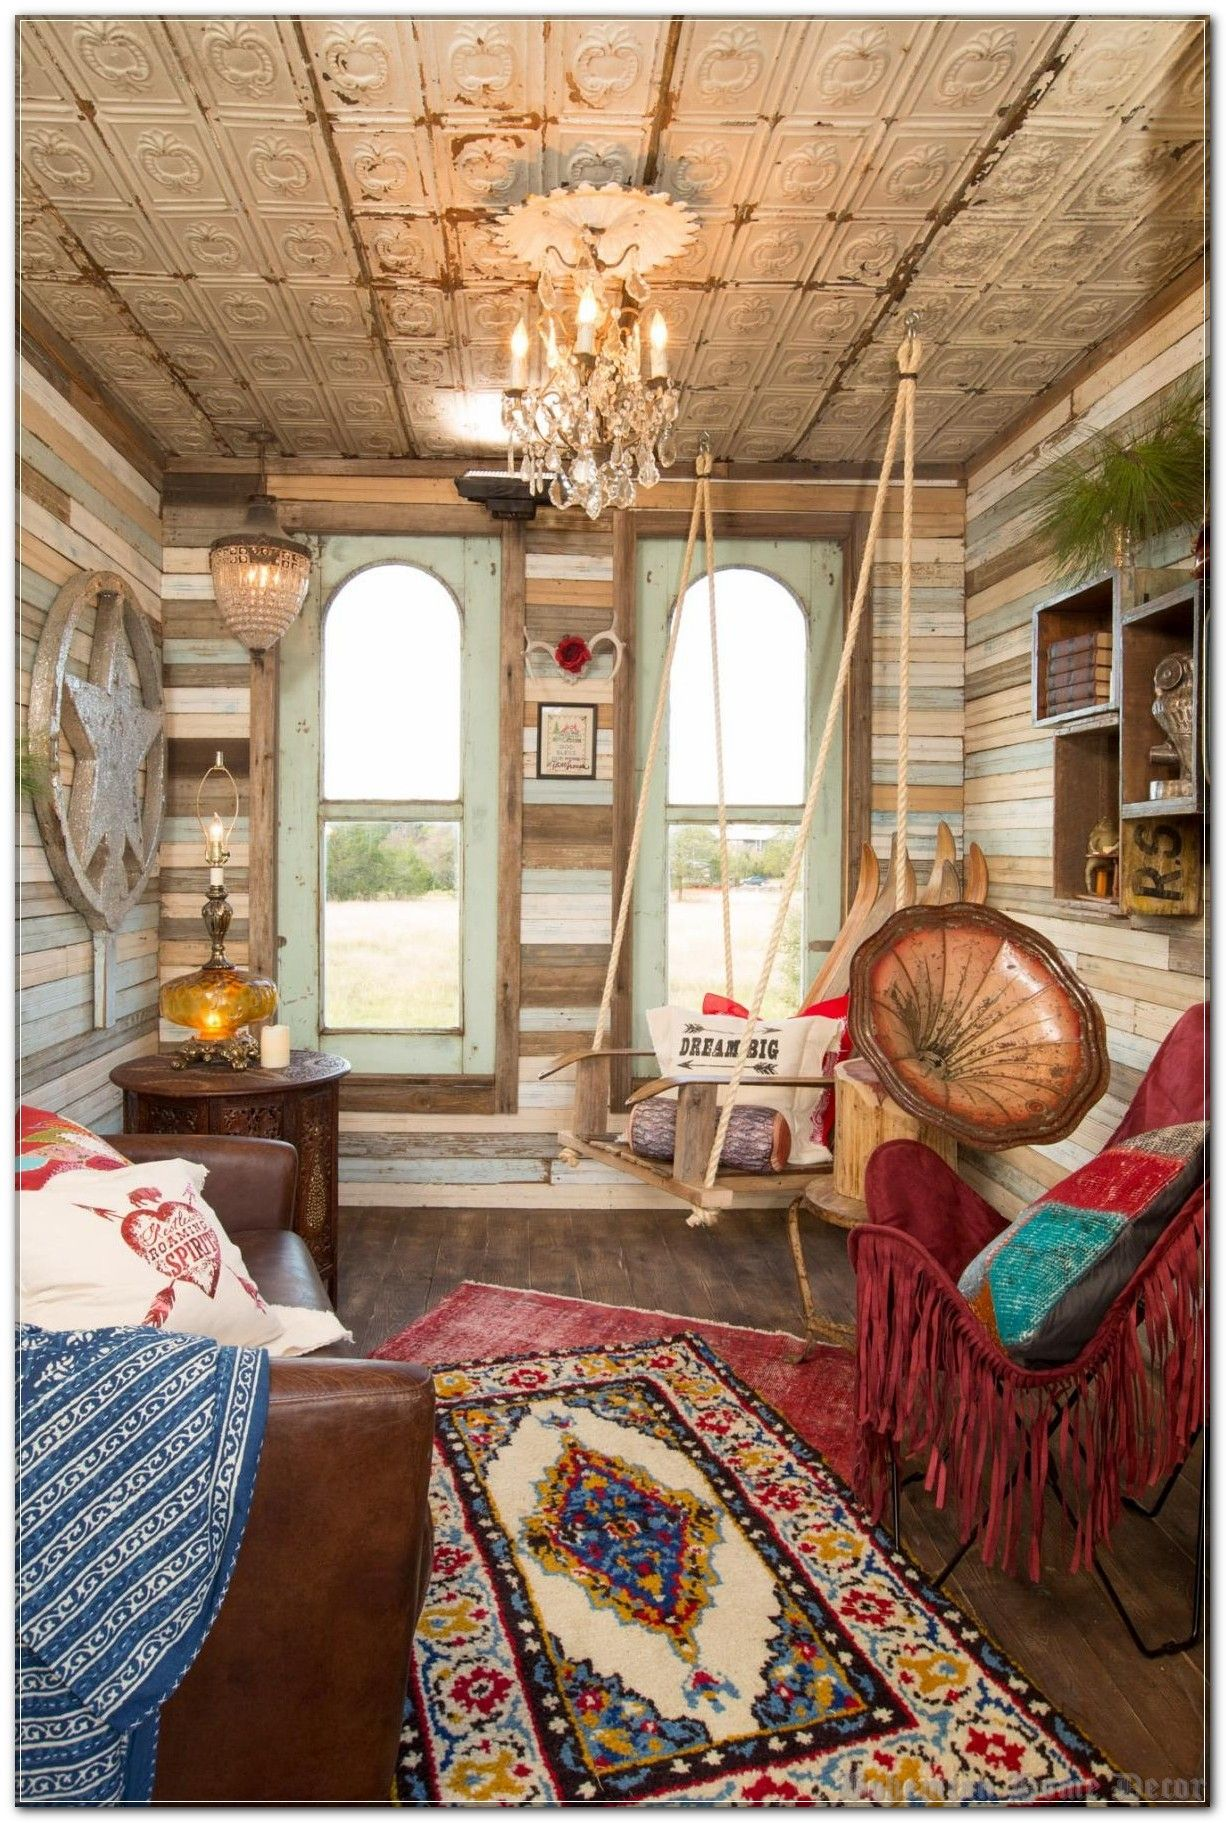 10 Trendy Ways To Improve On Bohemian Home Decor